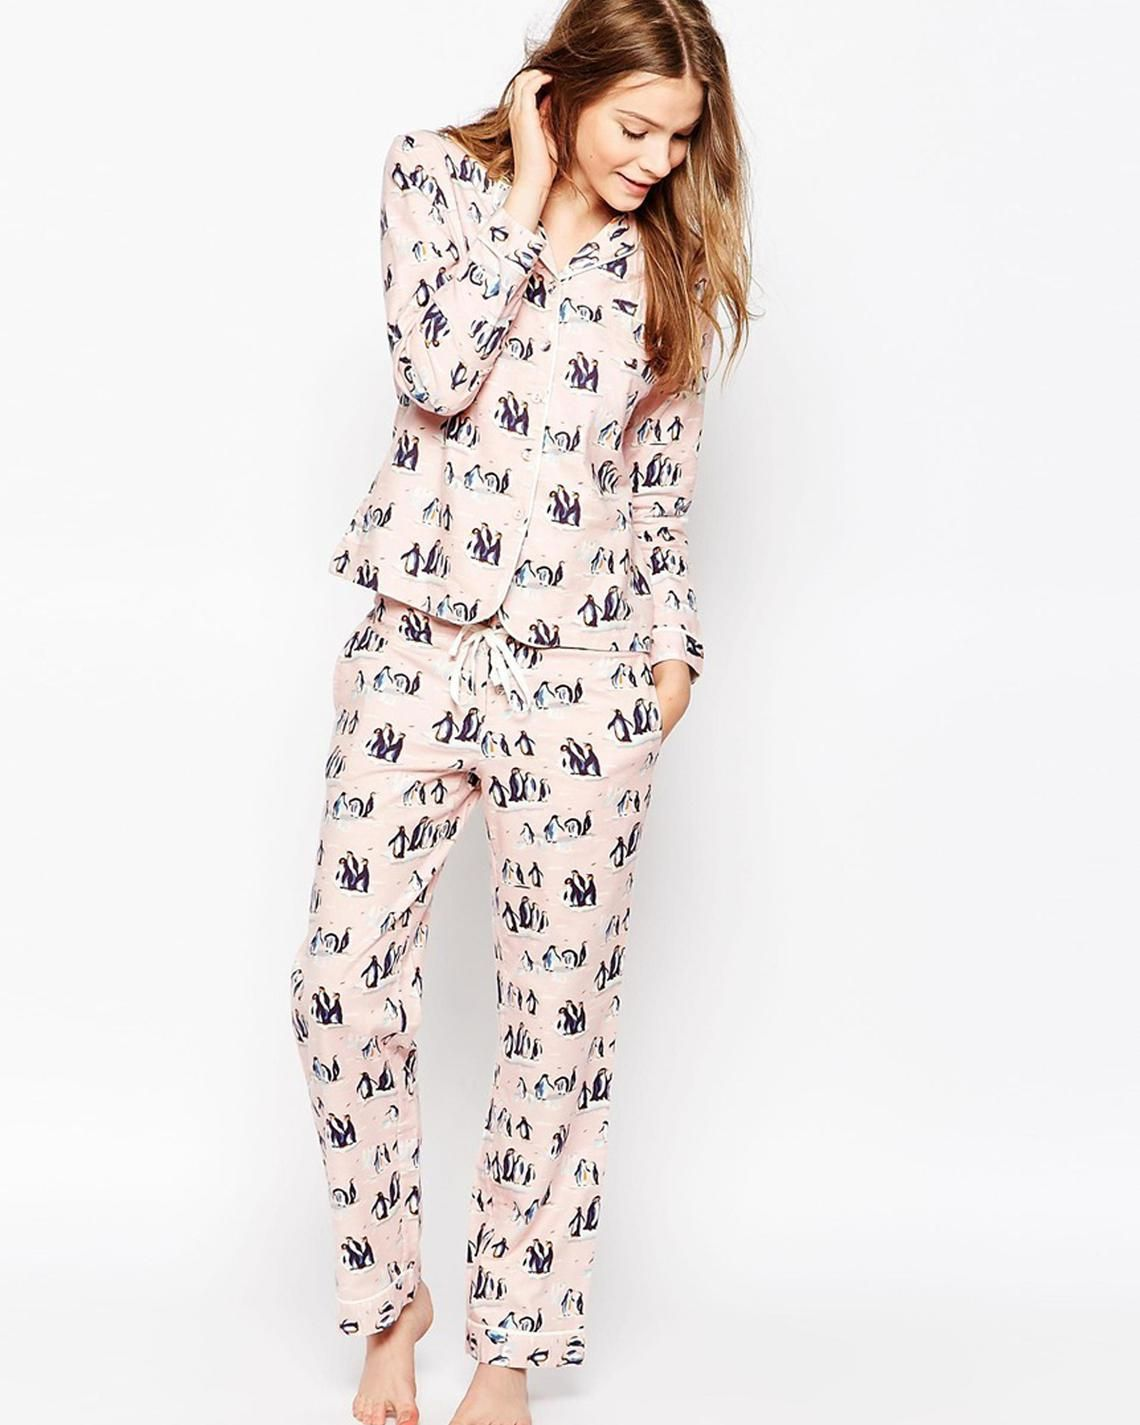 Homewear chic pour week-ends cocooning | Le Figaro Madame